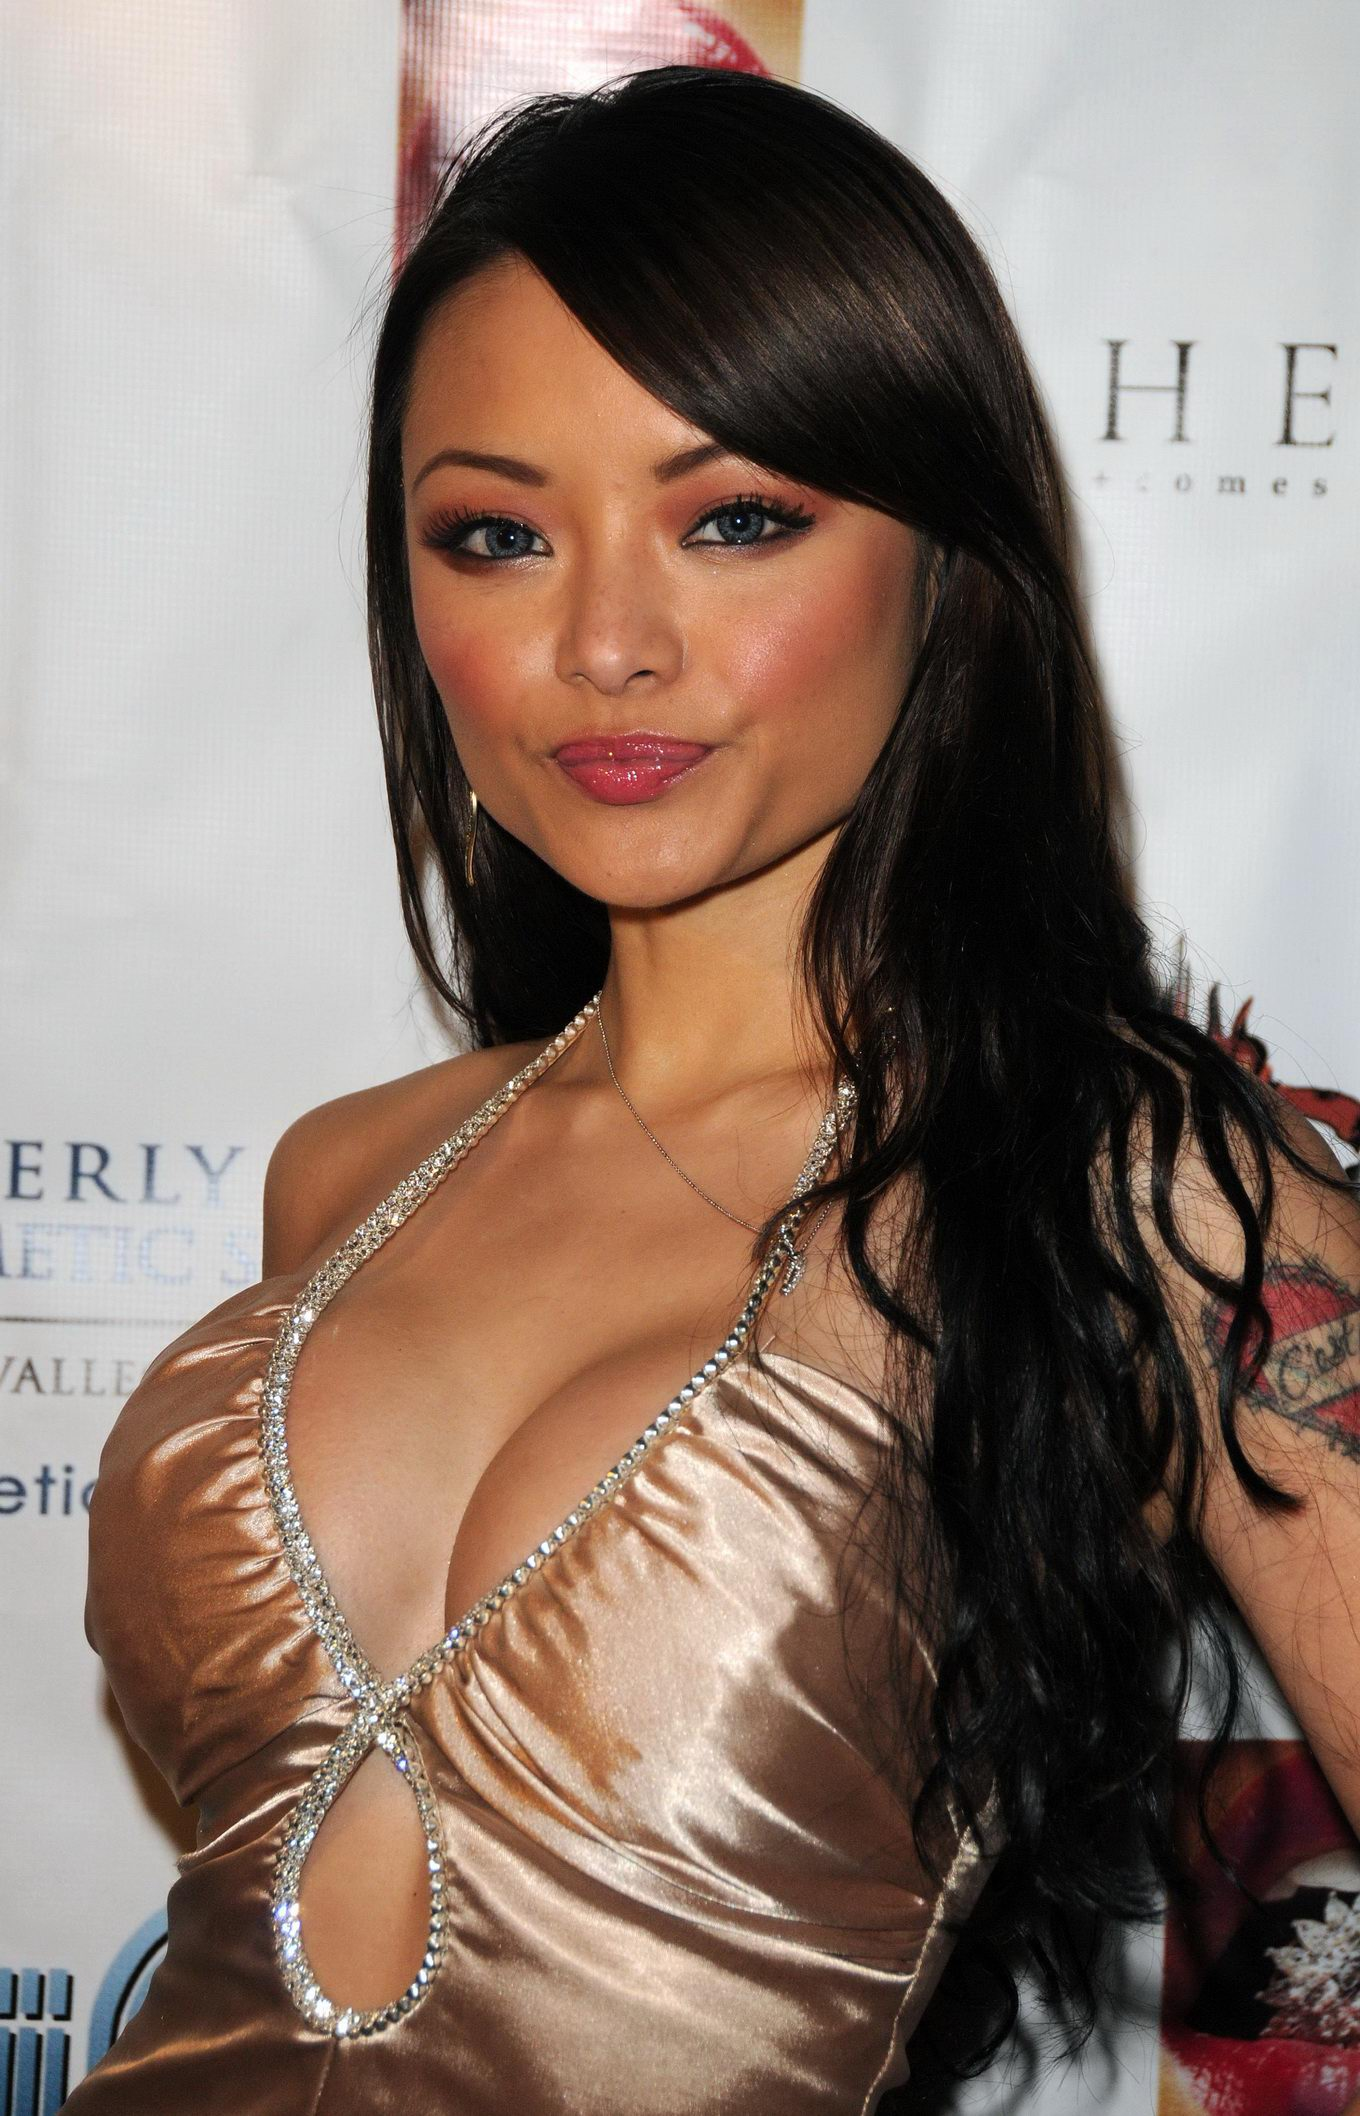 tila tequila now #9